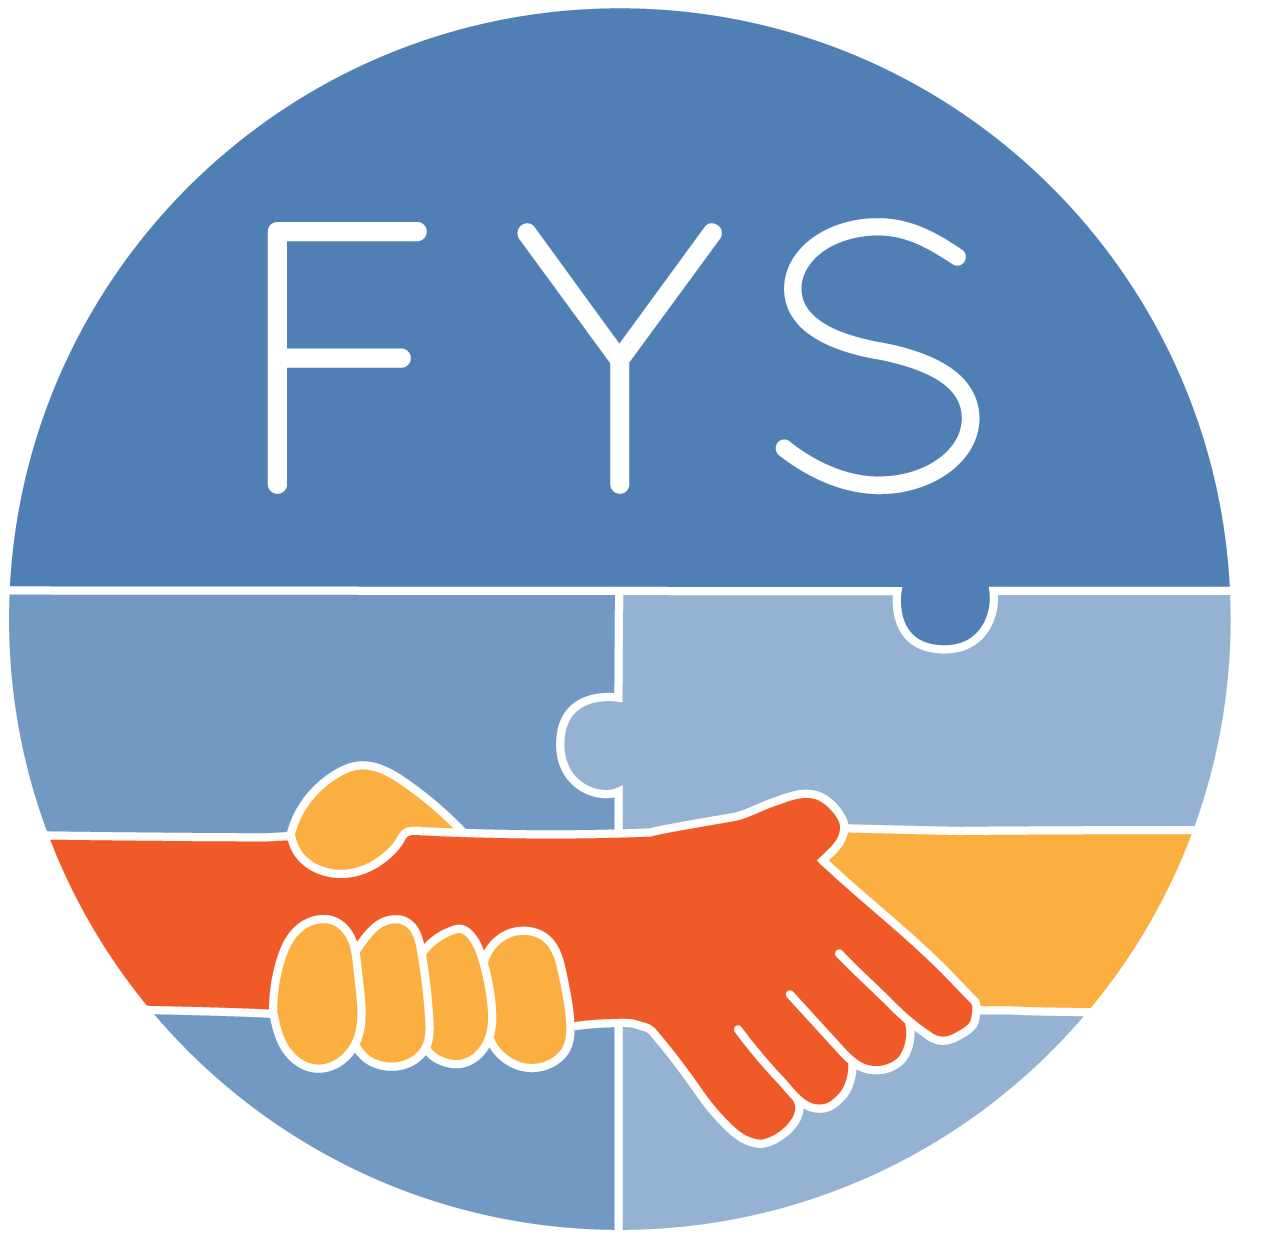 Forum for Young Scientists